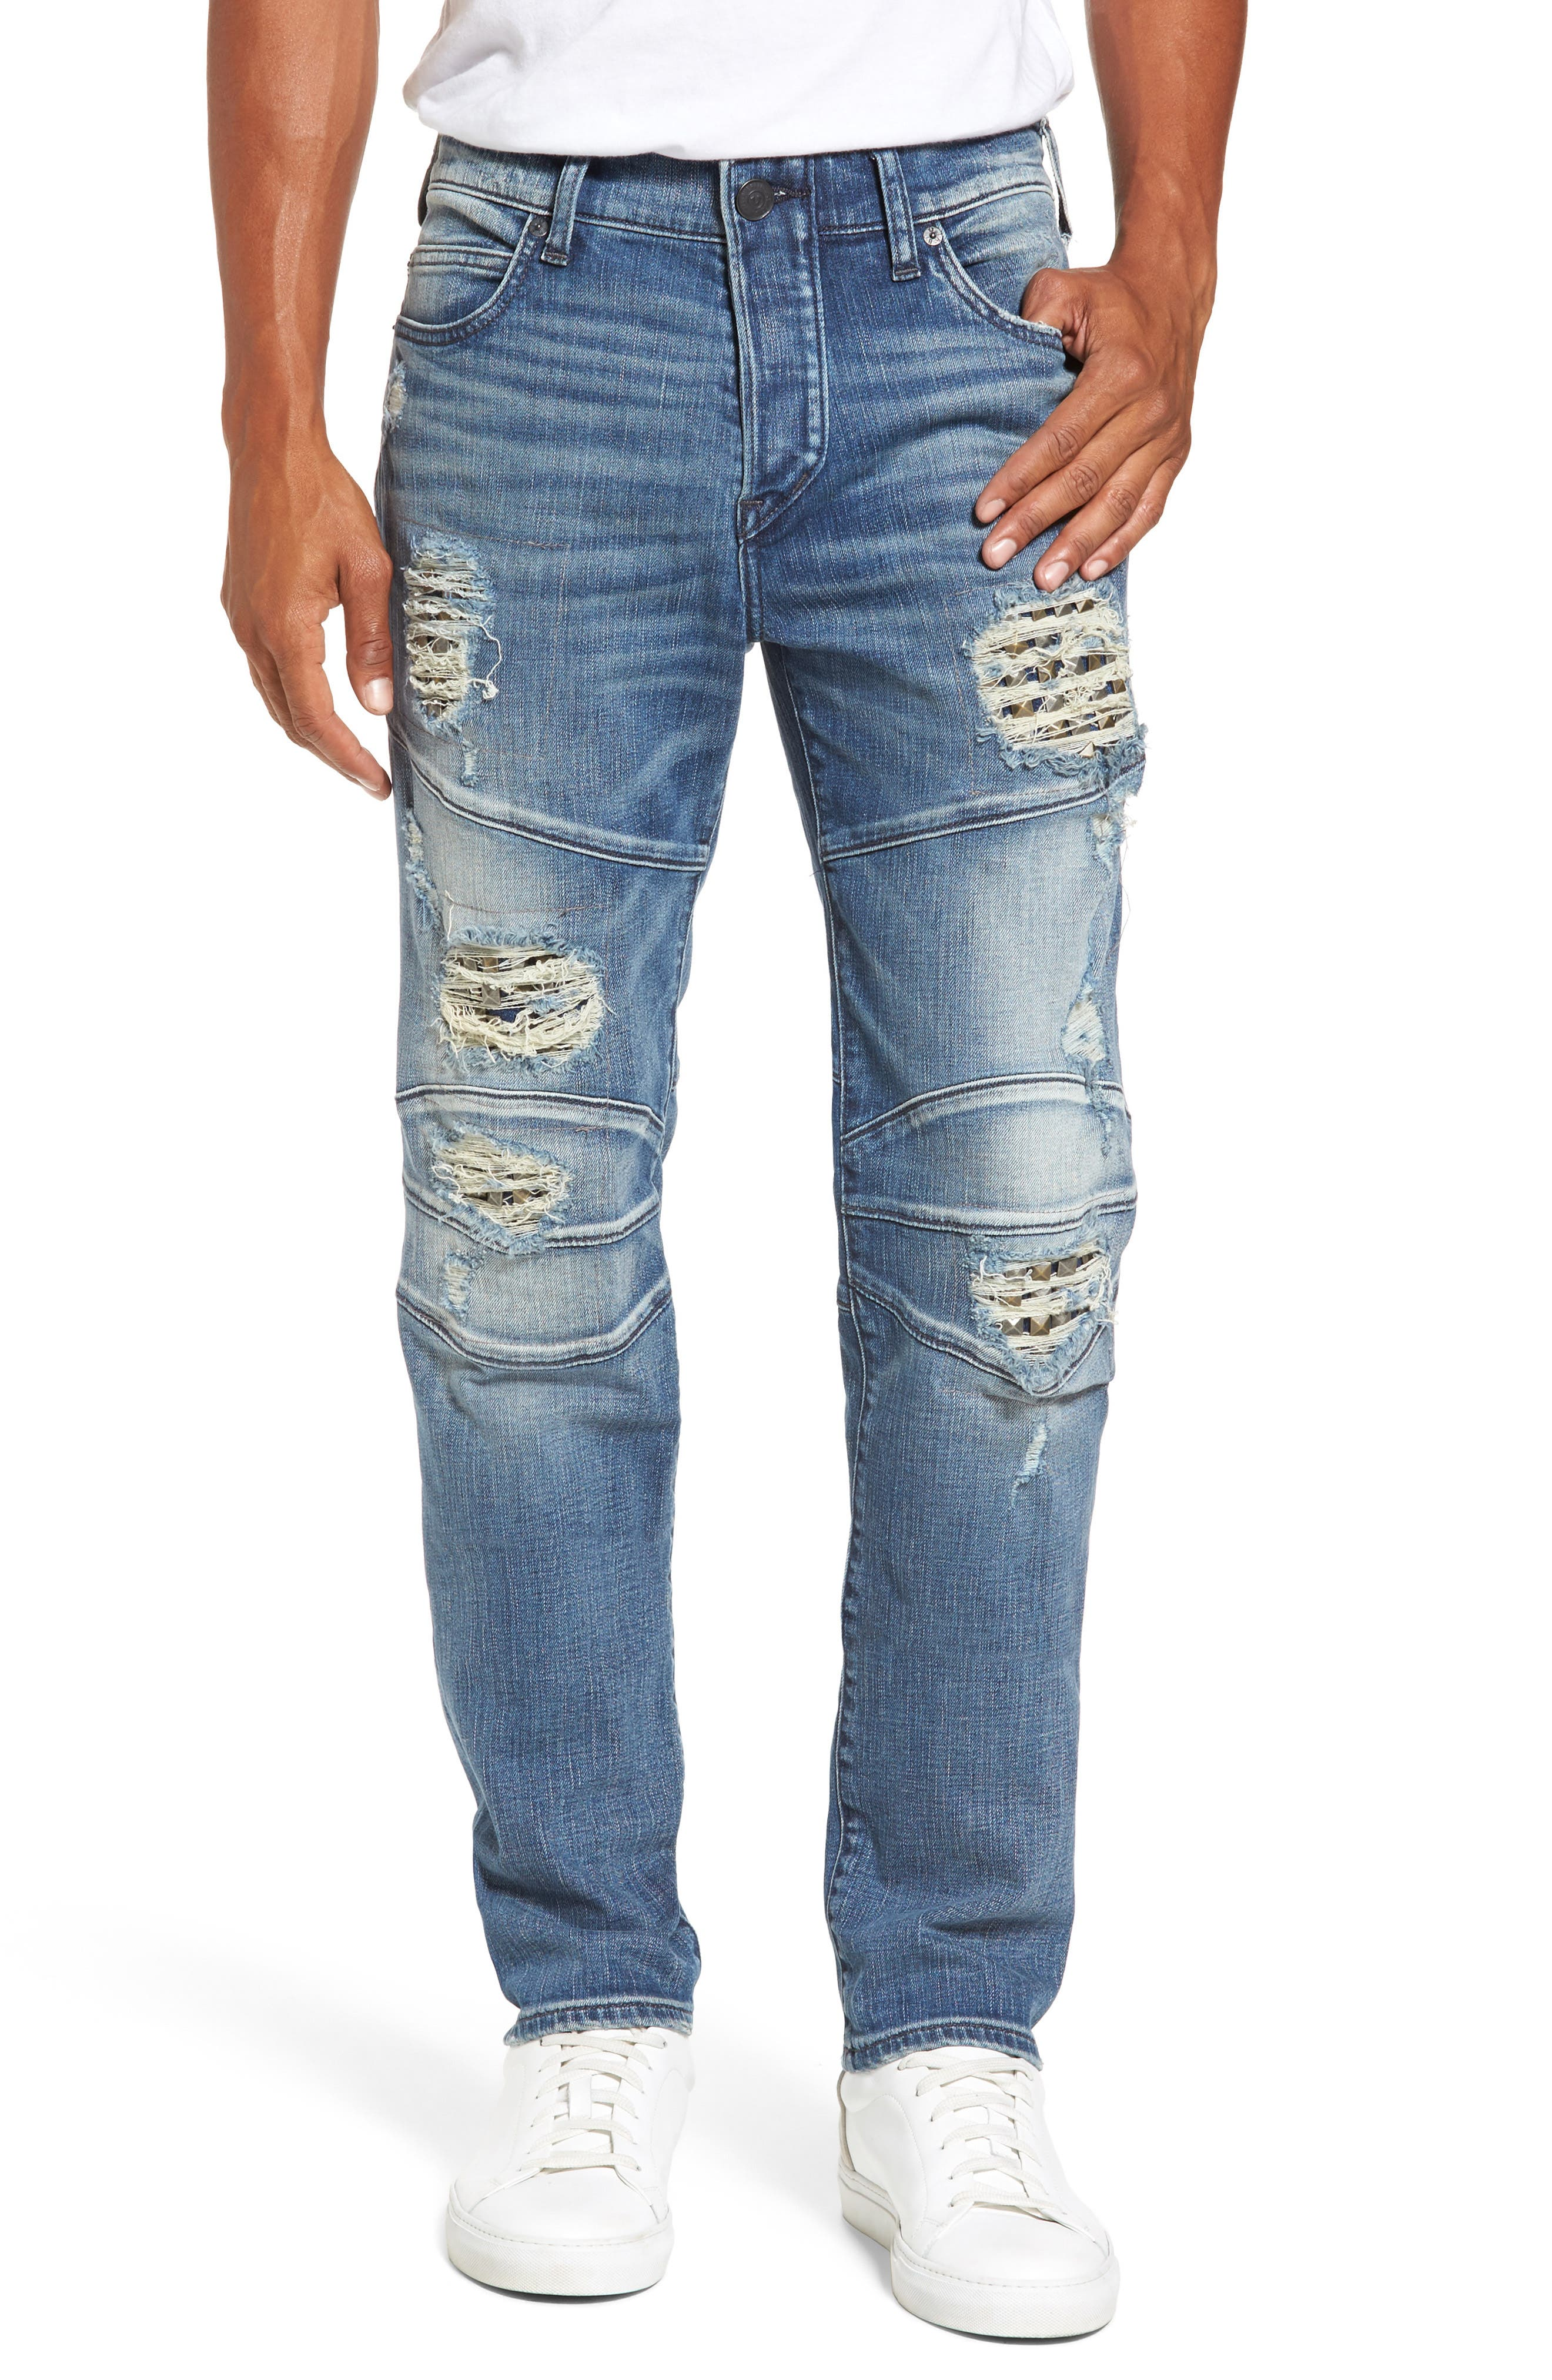 Alternate Image 1 Selected - True Religion Brand Jeans Rocco Skinny Fit Jeans (Indigo Clutch)